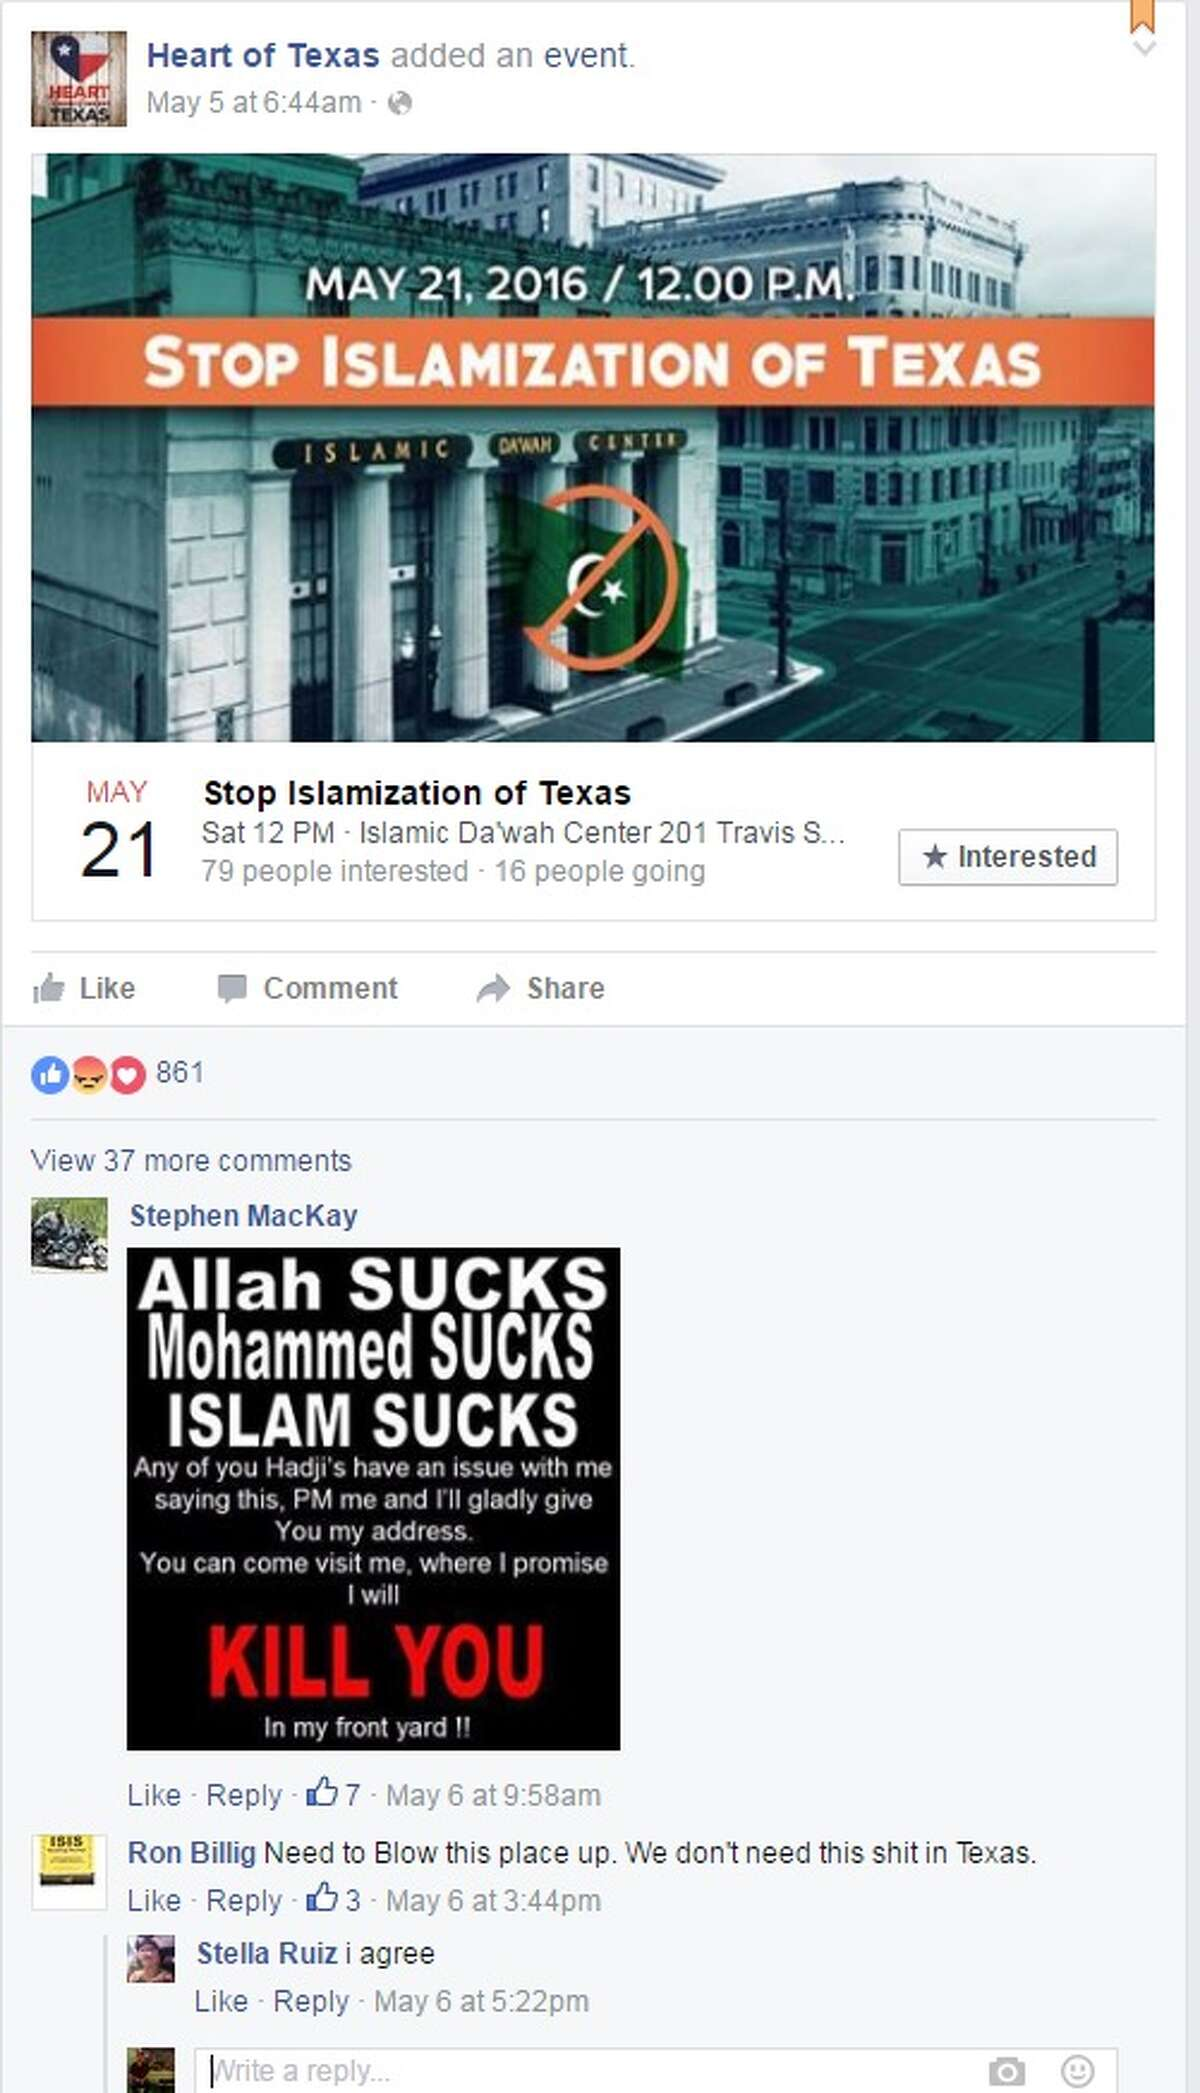 The Houston chapter of the Council on American-Islamic Relations contacted the FBI and state authorities Monday about a Facebook comment advocating blowing up part of the Islamic Da'wah Center.